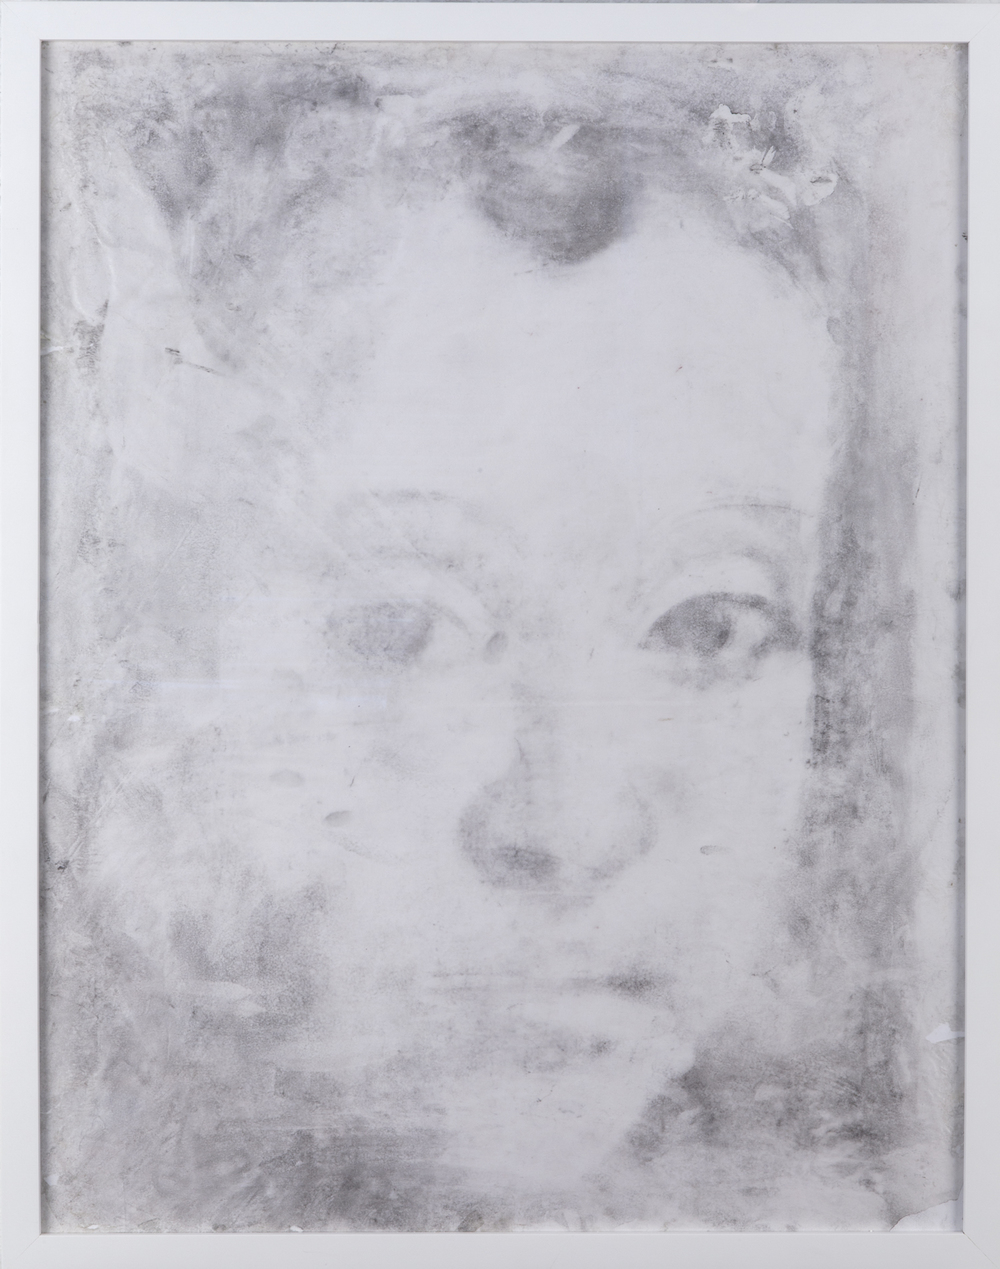 Charcoal on Glassine (after Christus), 2013